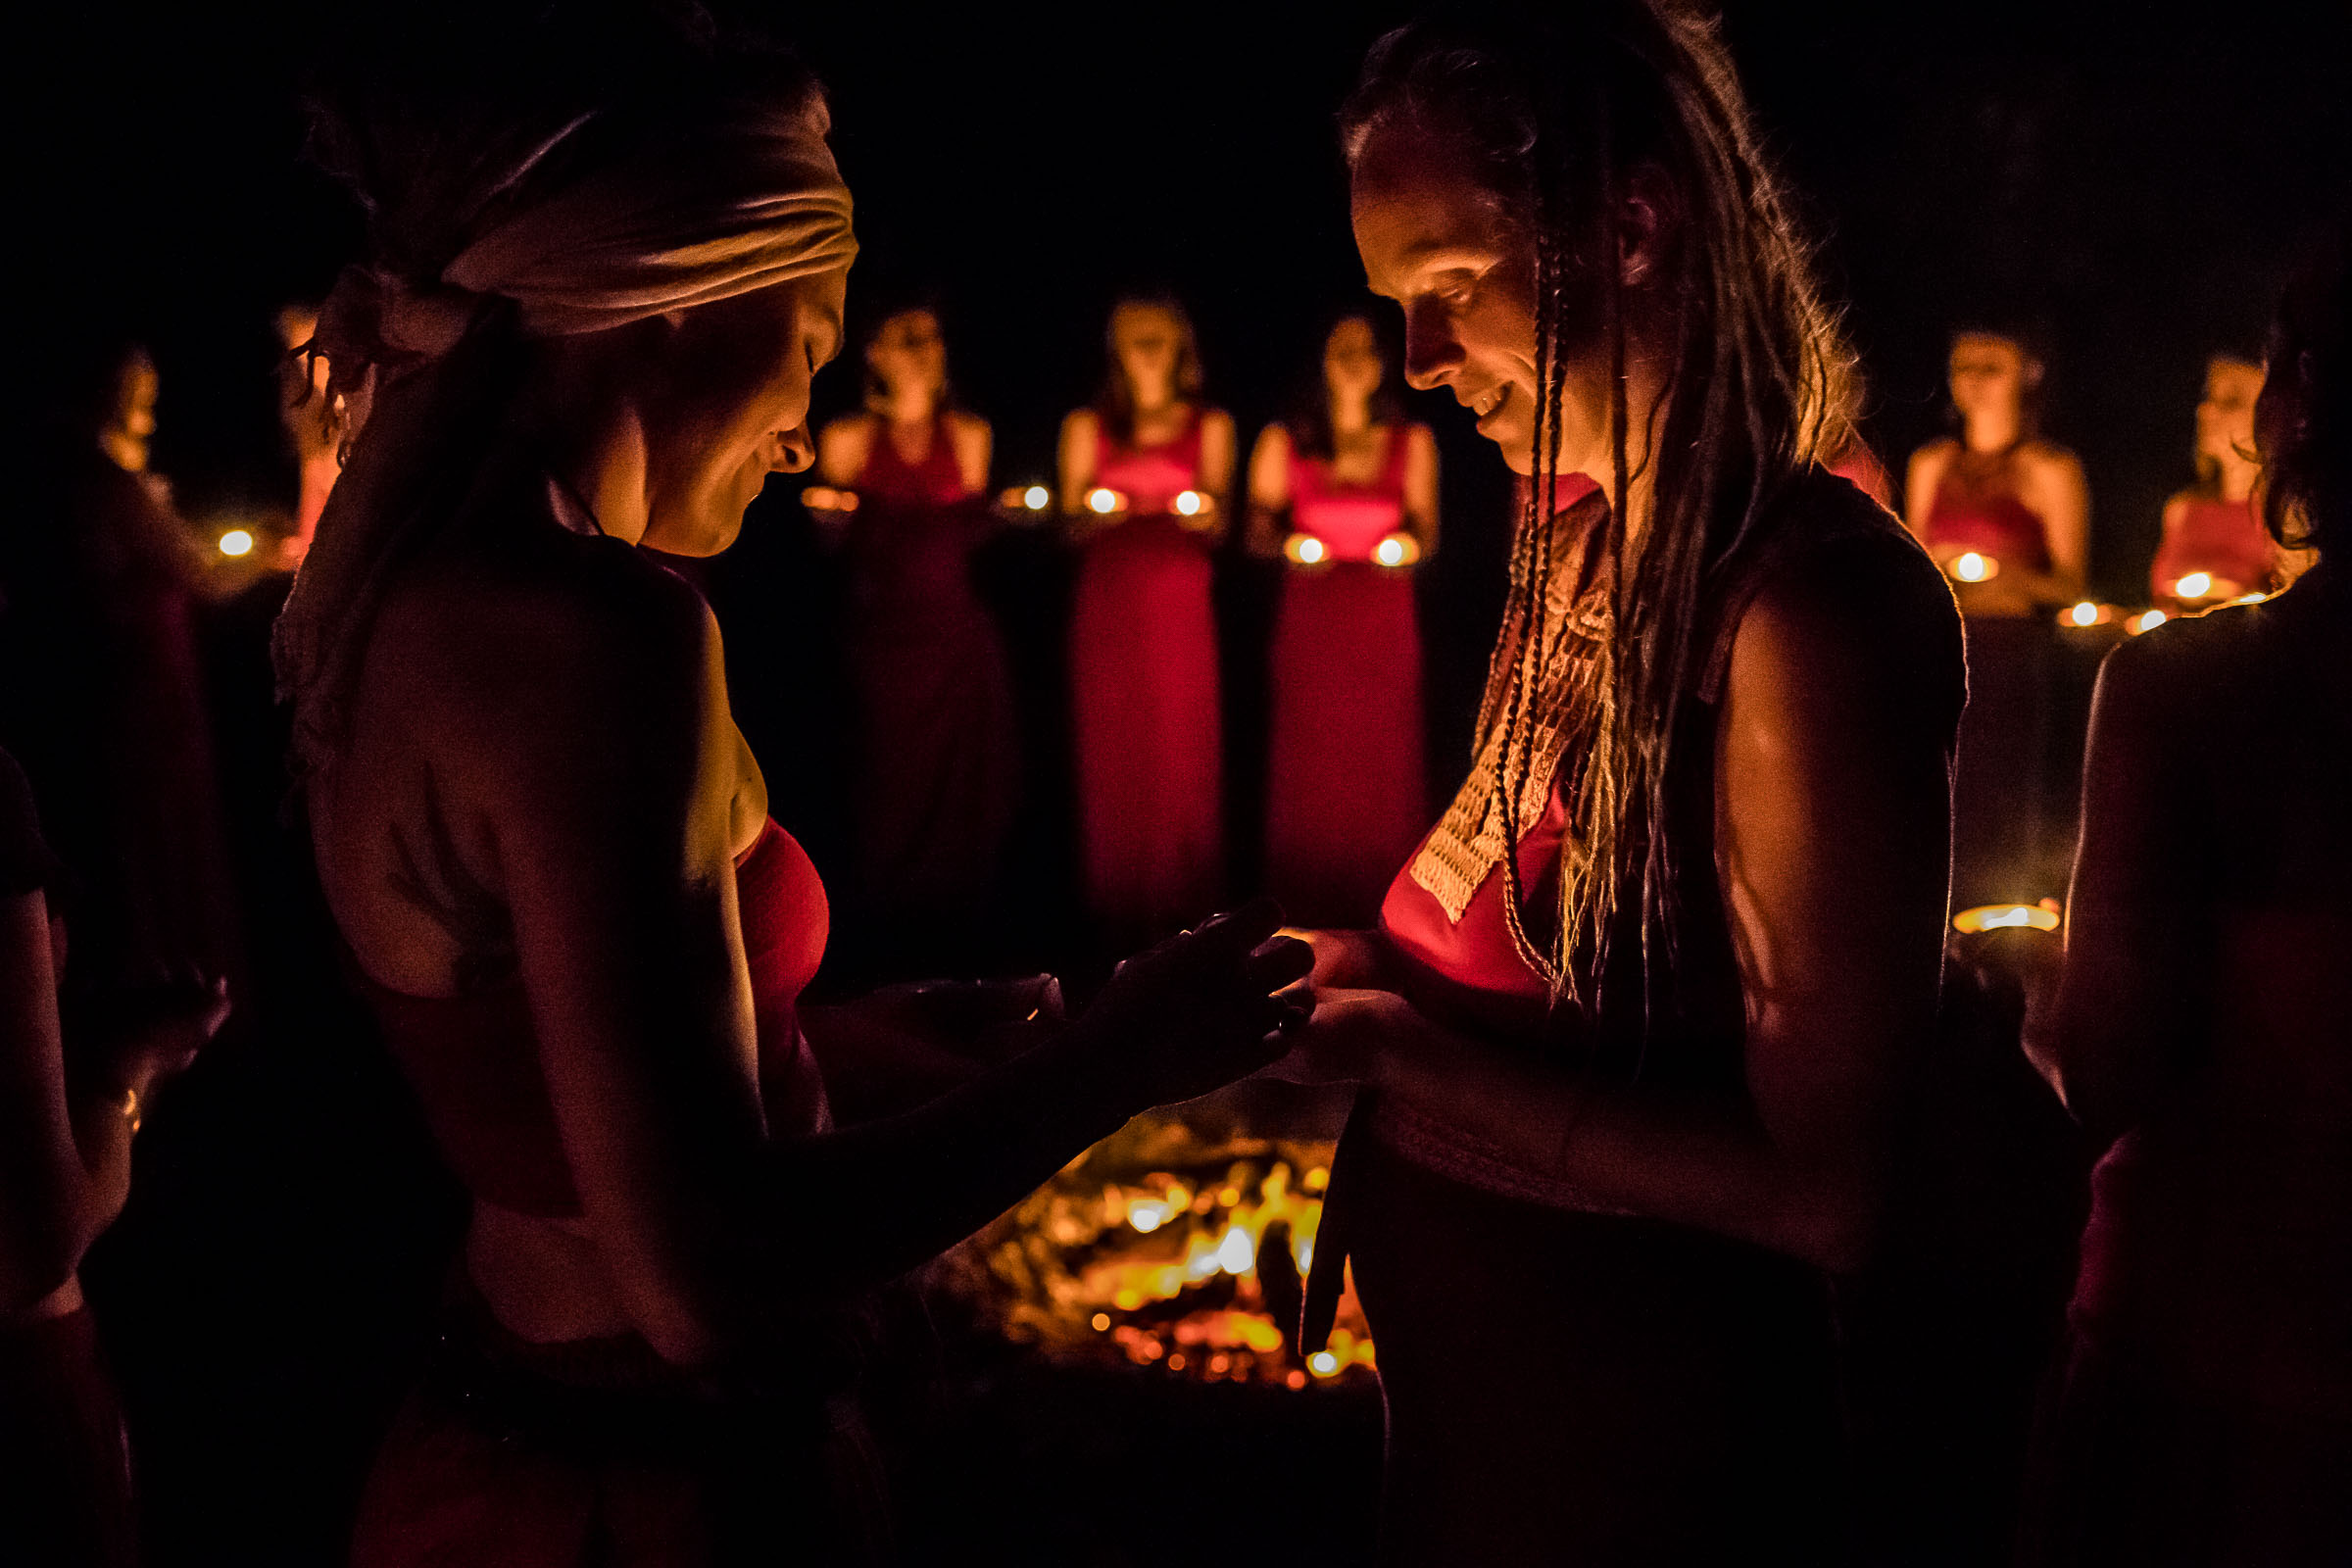 Women circle over the fire, Retreat ceremony capture by Portrait Photographer